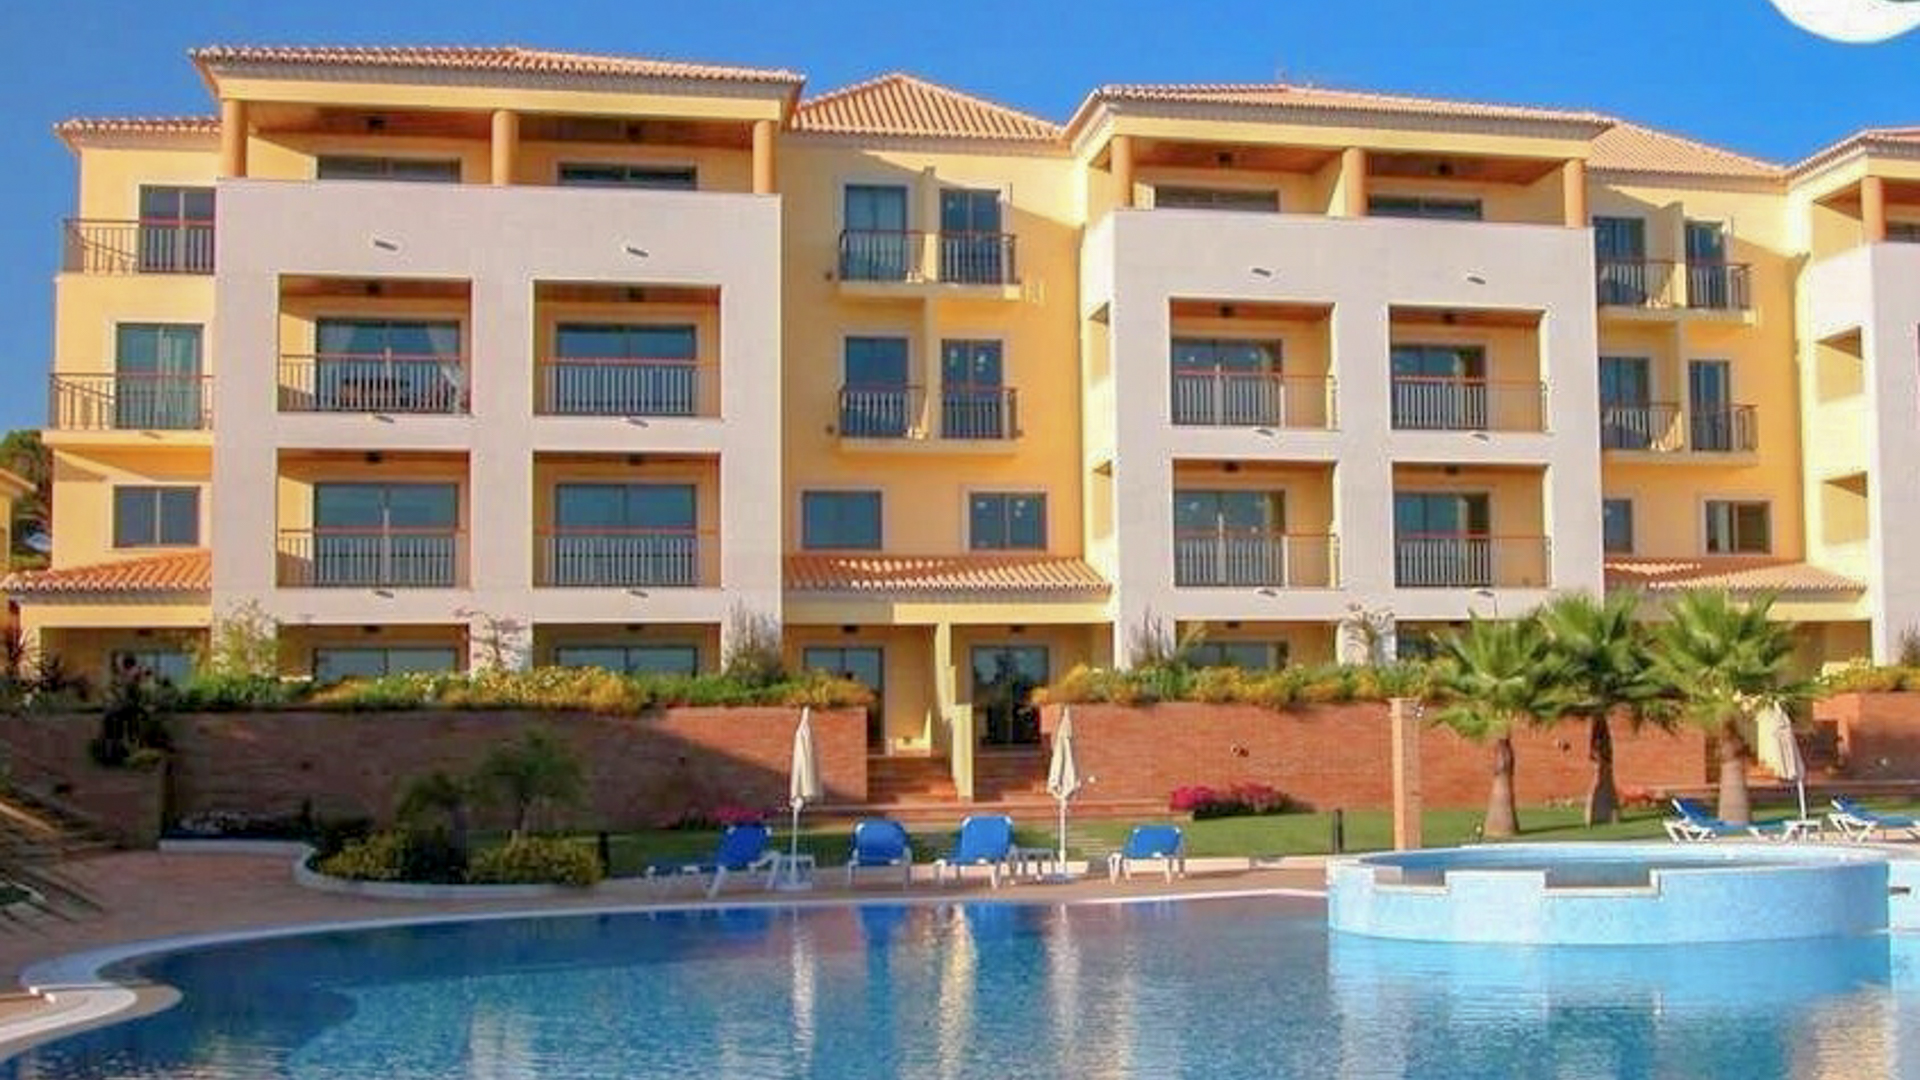 2 bedroom apartment in vilamoura with coastal views